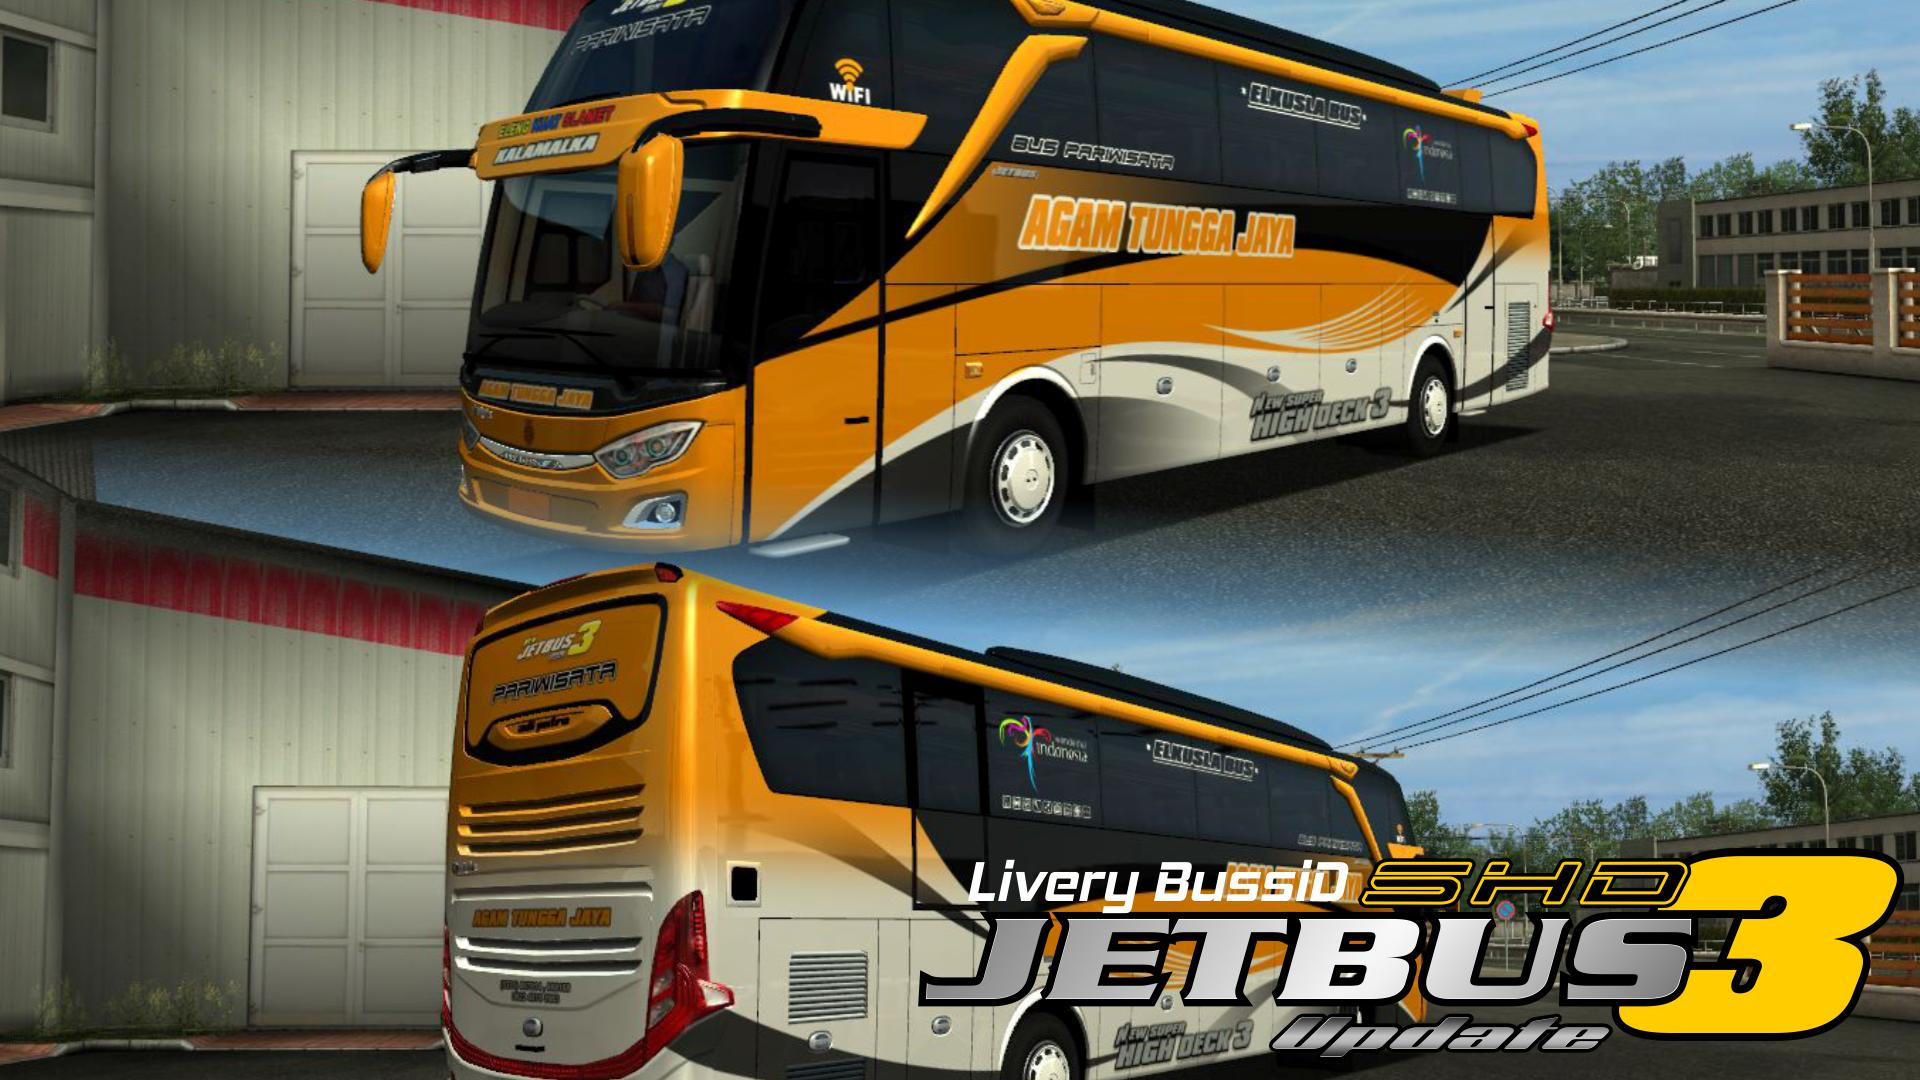 Livery Bussid Jetbus 3 Shd For Android Apk Download